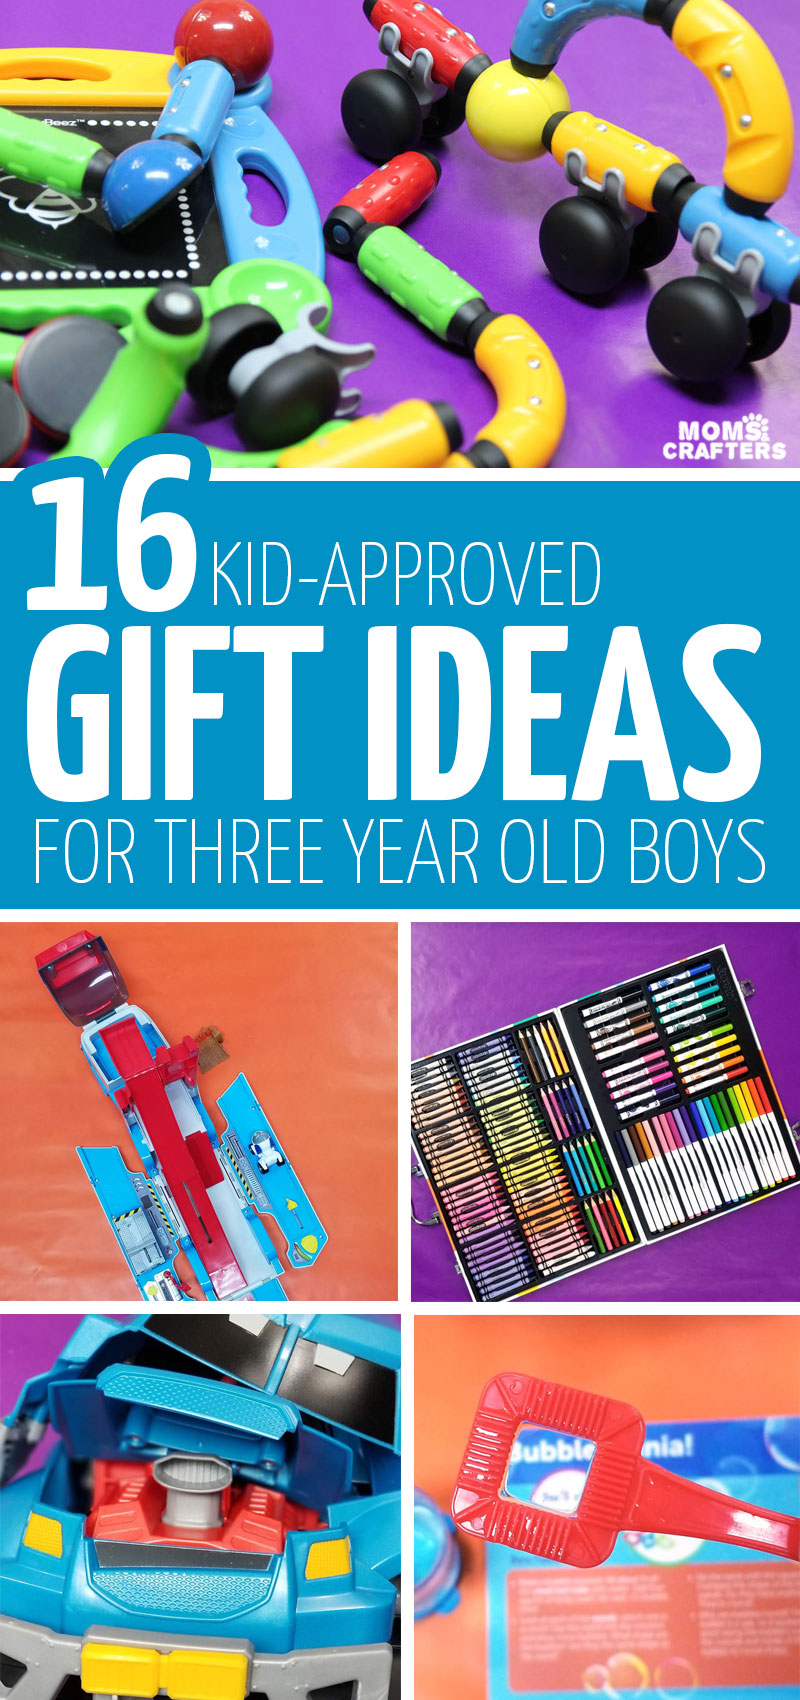 If you're looking for educational play gifts for kids ages 3-6, this list of the best birthday gifts for 3 year old boys is perfect for Christmas and Hanukkah too! They come in every price range so you'll find something cheap and affordable, or grand and dream-fulfilling!